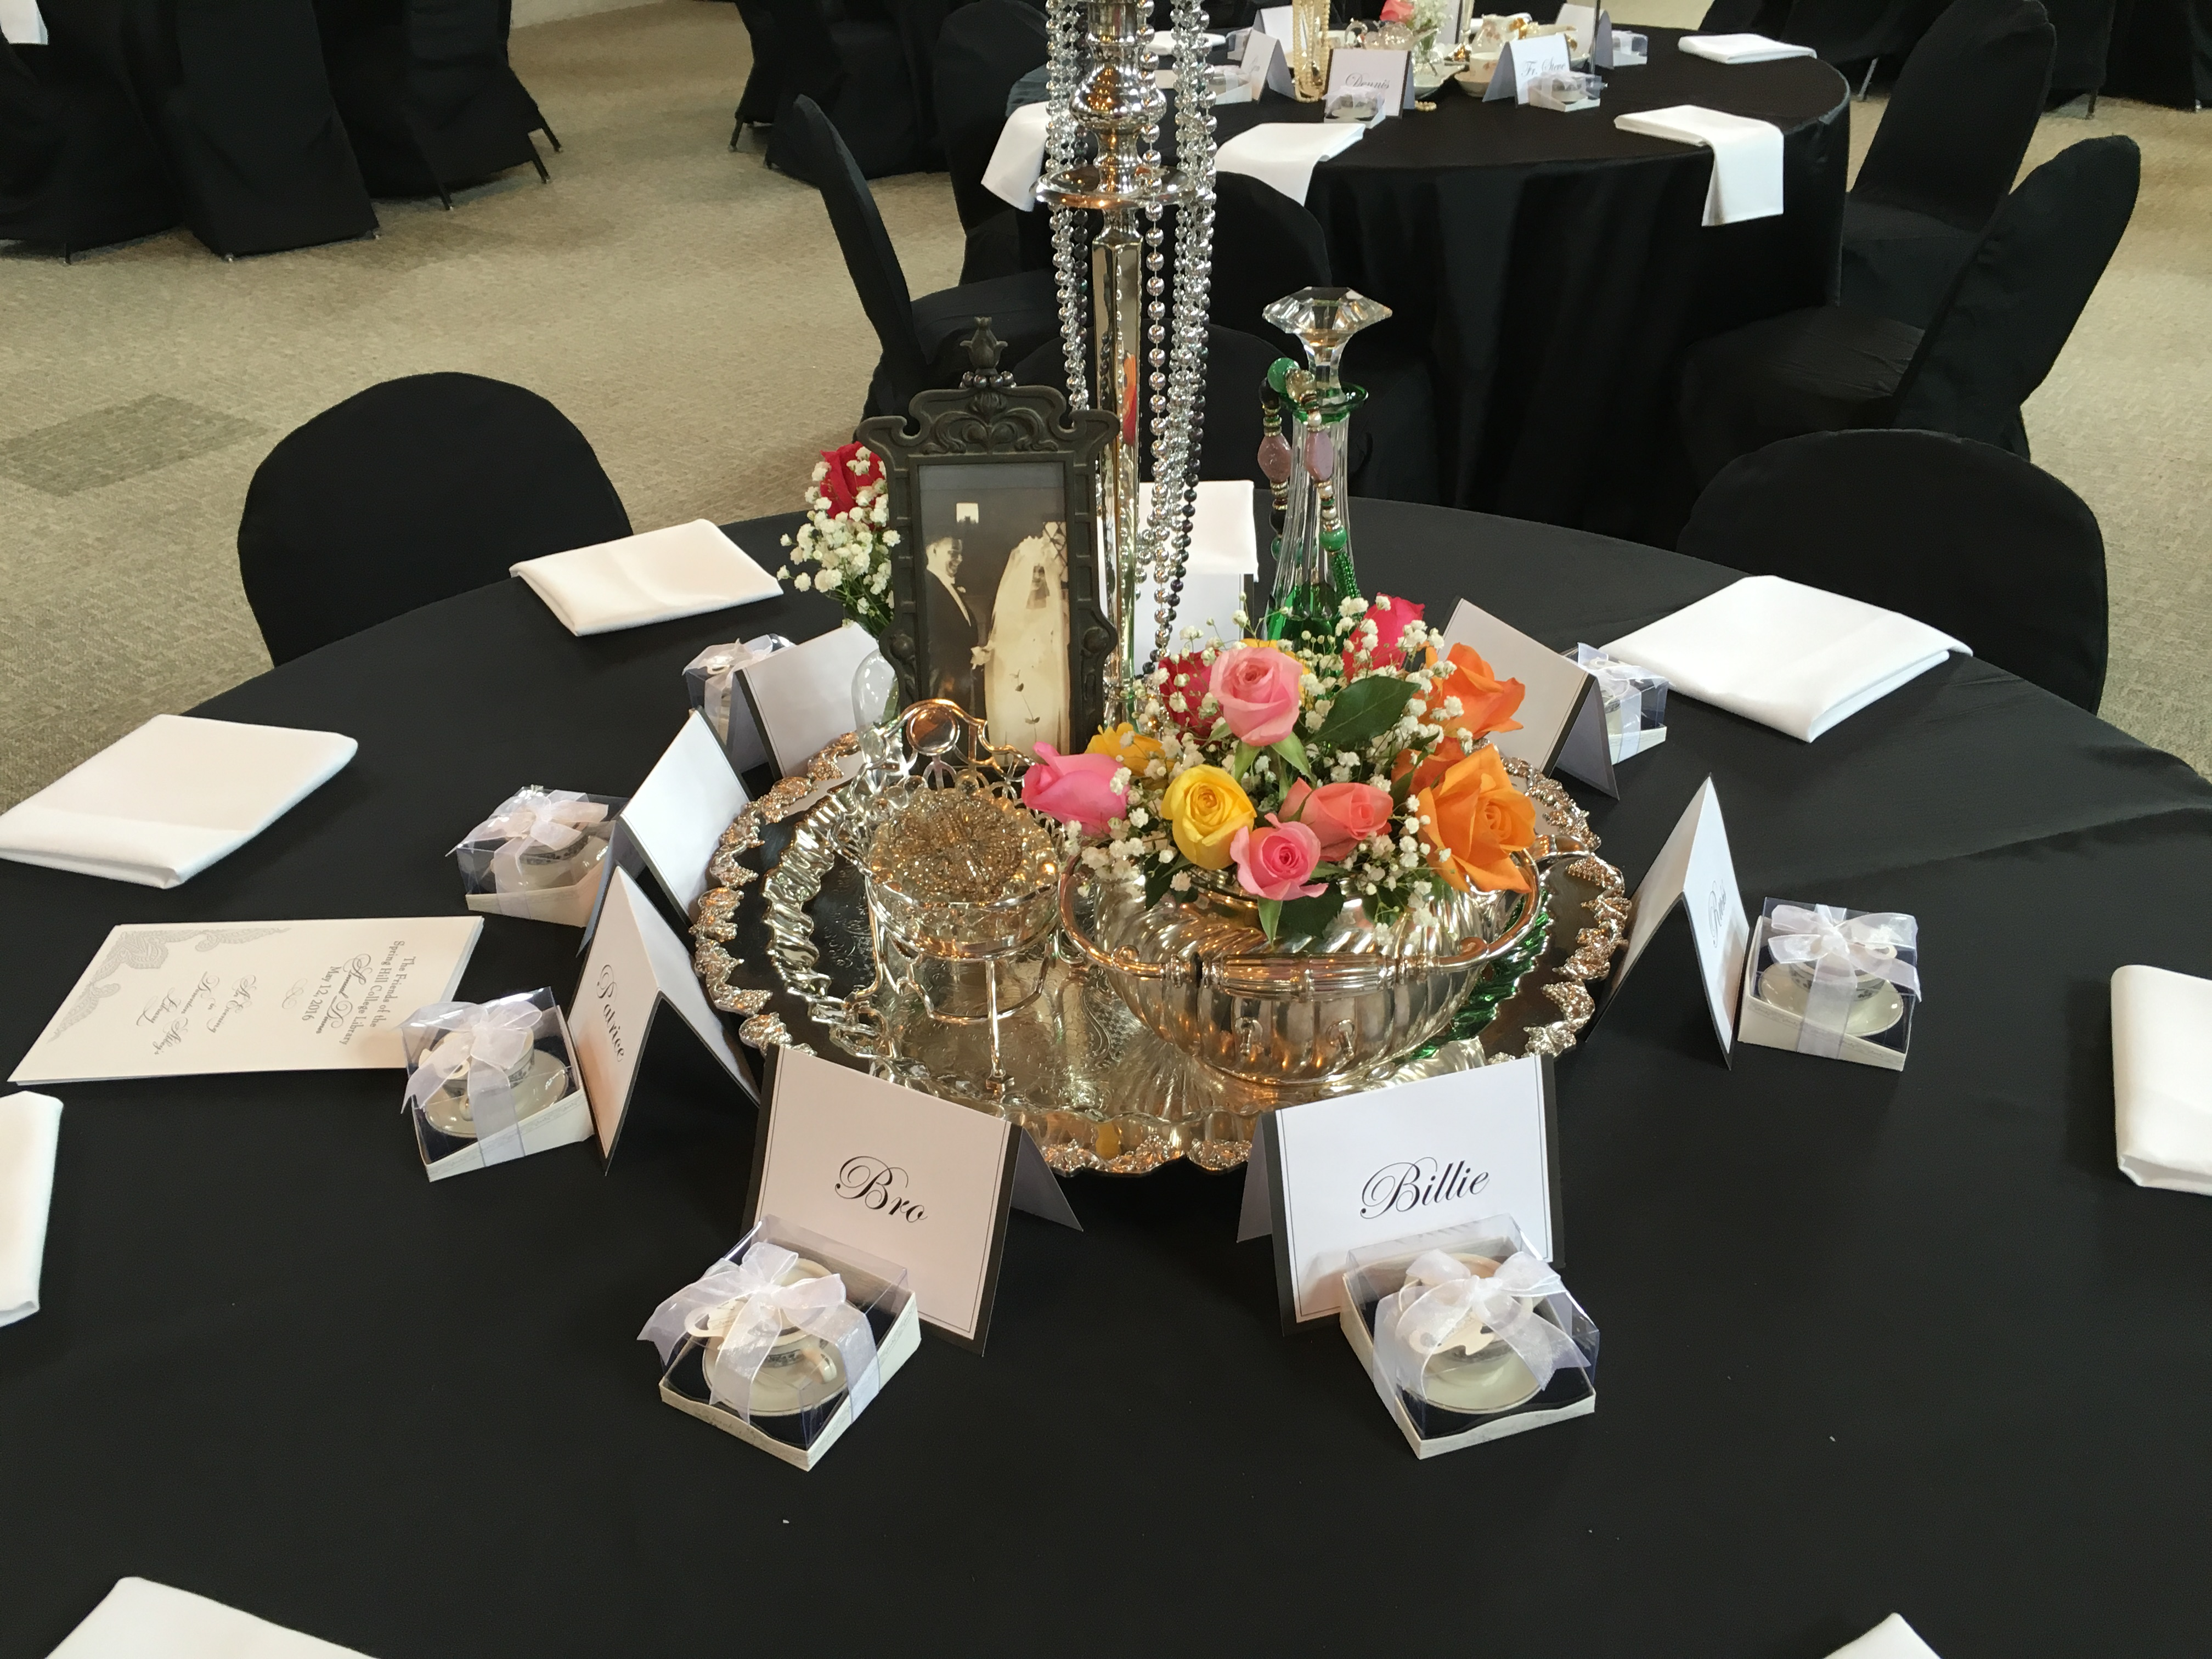 Table Arrangement with Roses and Candles